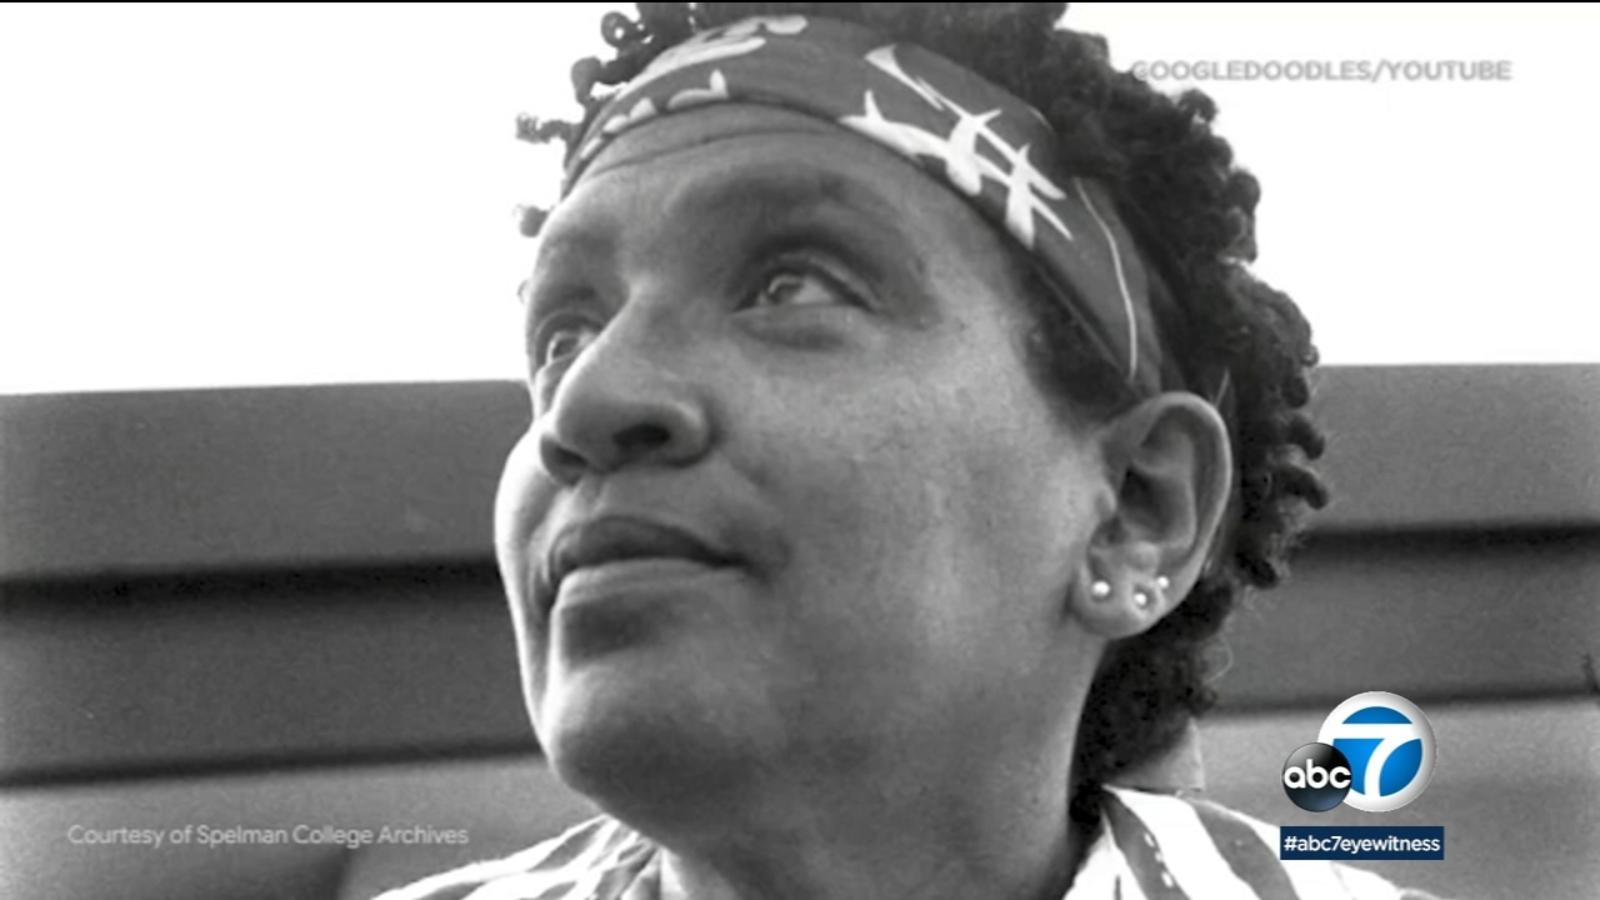 Renowned local illustrator Monica Ahanonu behind Google Doodle of civil rights poet Audre Lorde for Black History Month